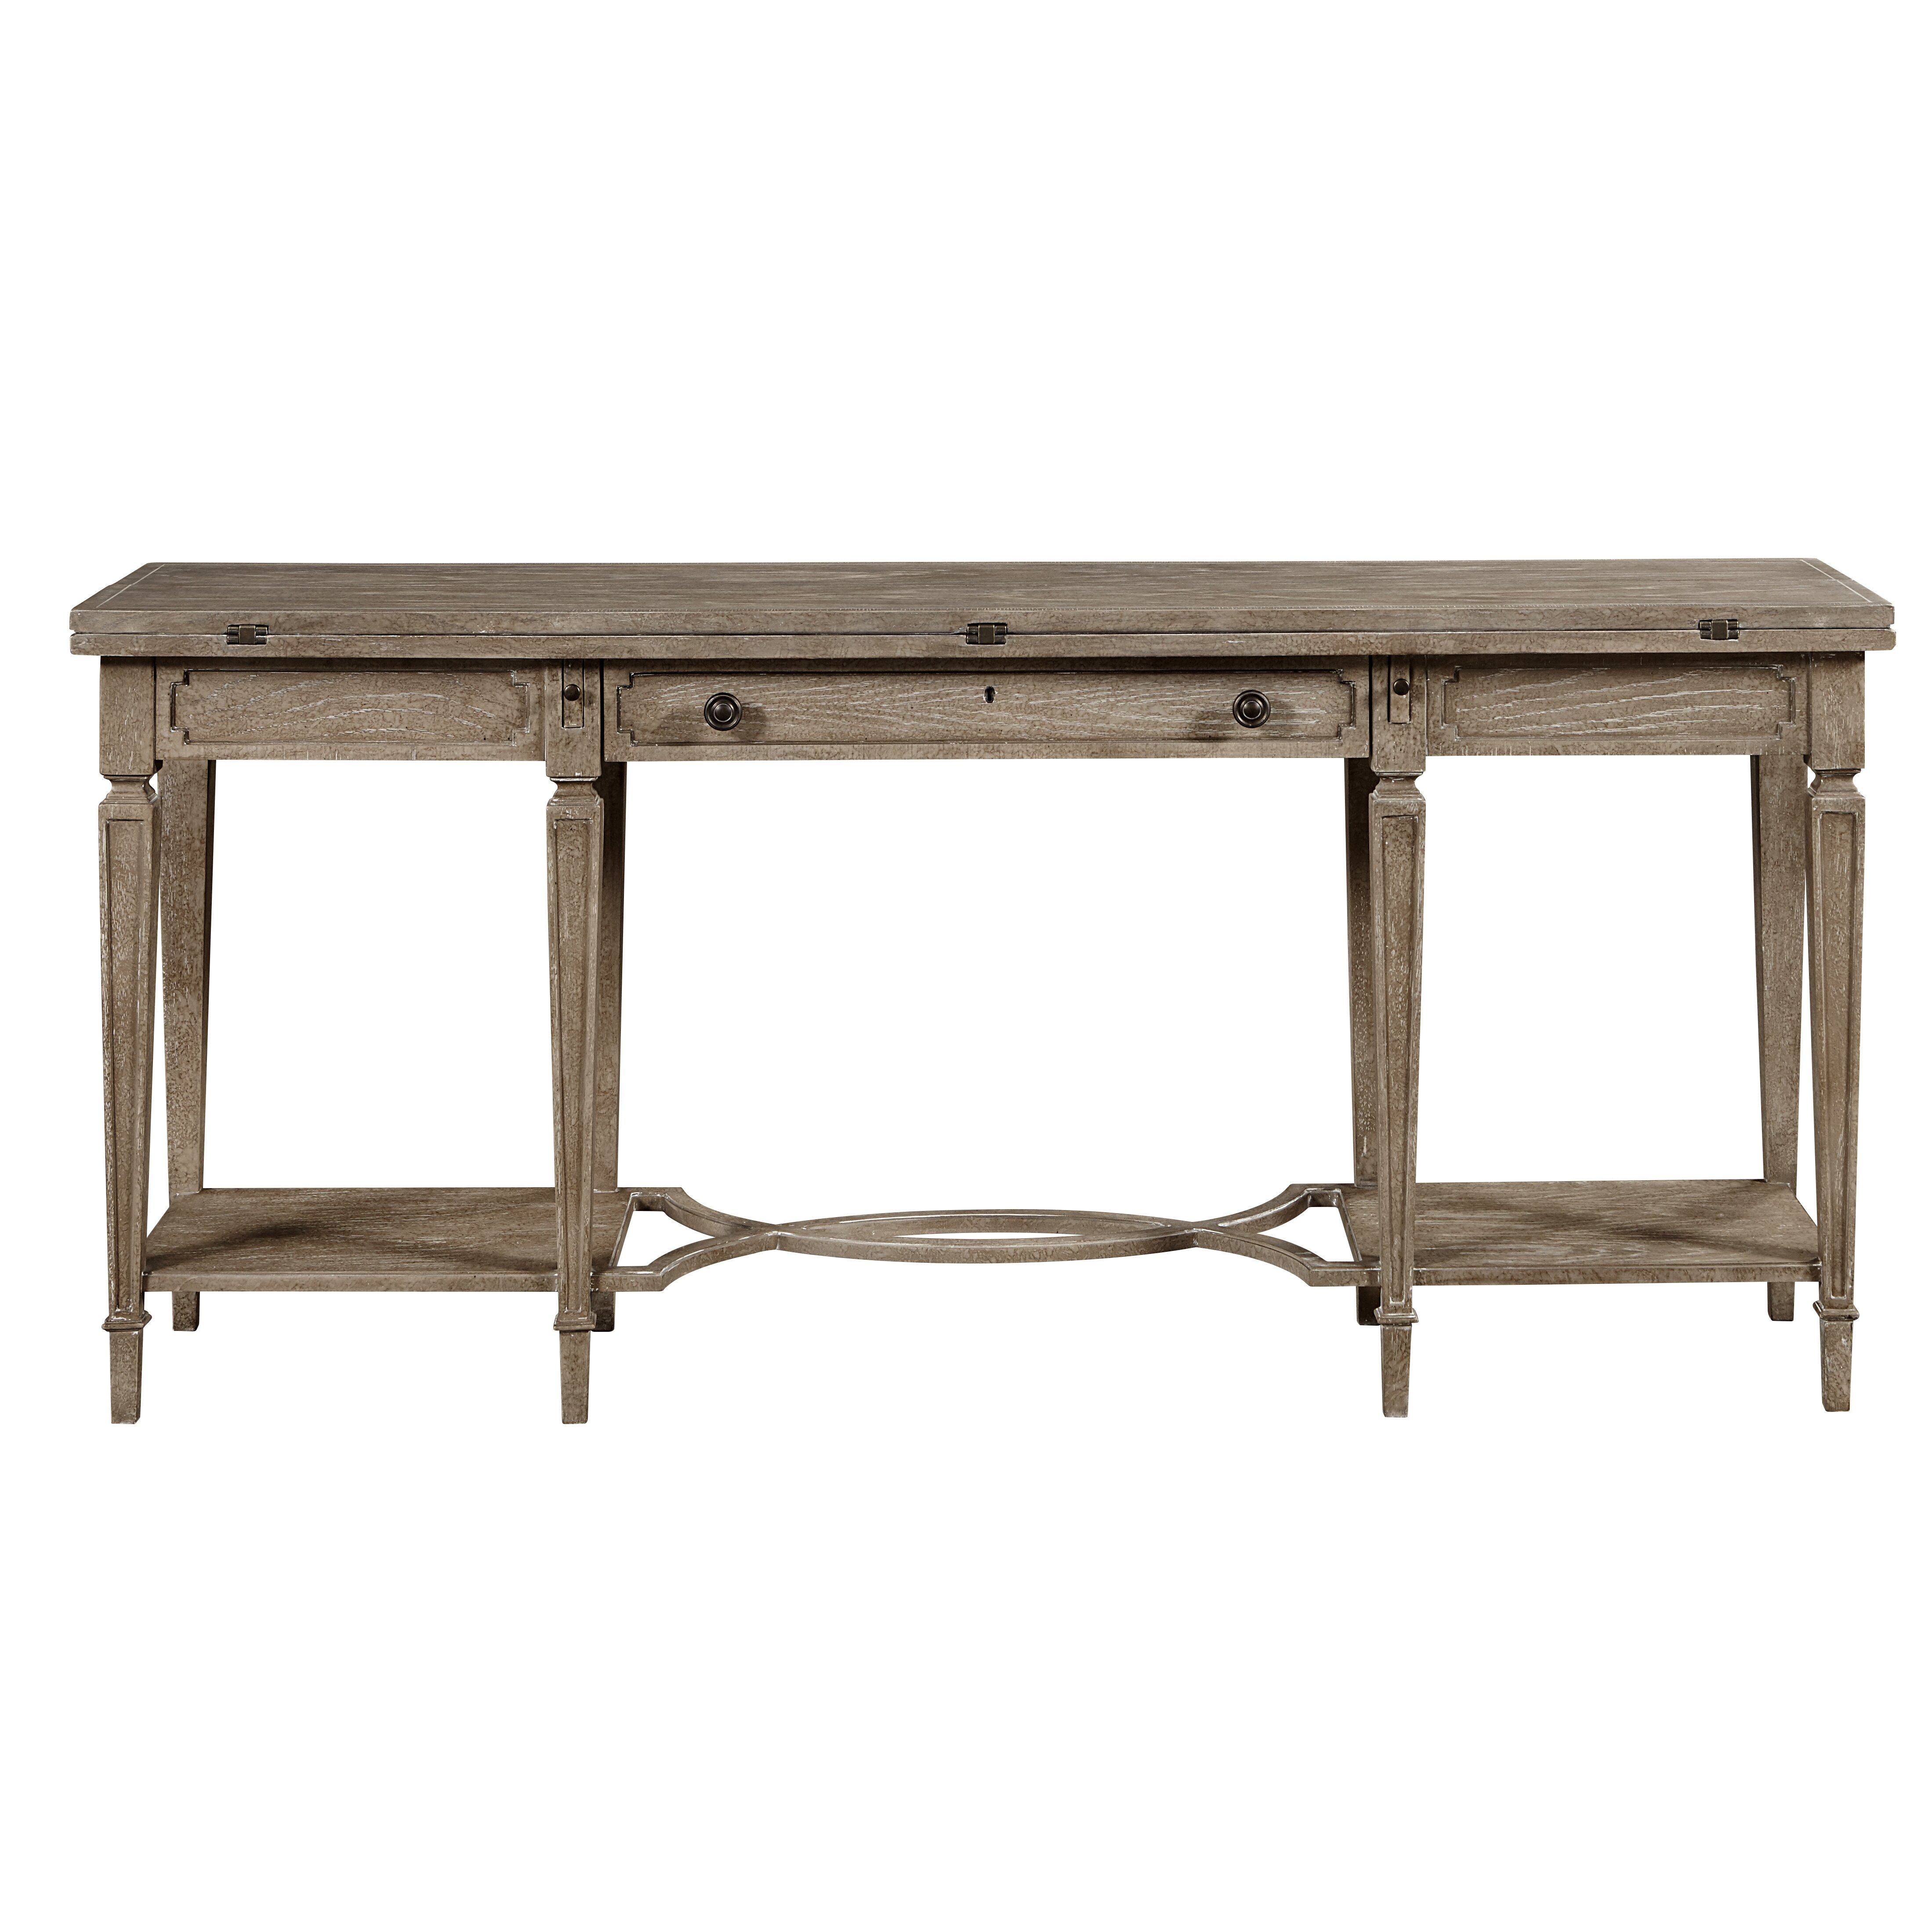 Wayfair Sofa Table Alaterre Renewal Console Table Reviews Wayfair Leick Console Table Reviews